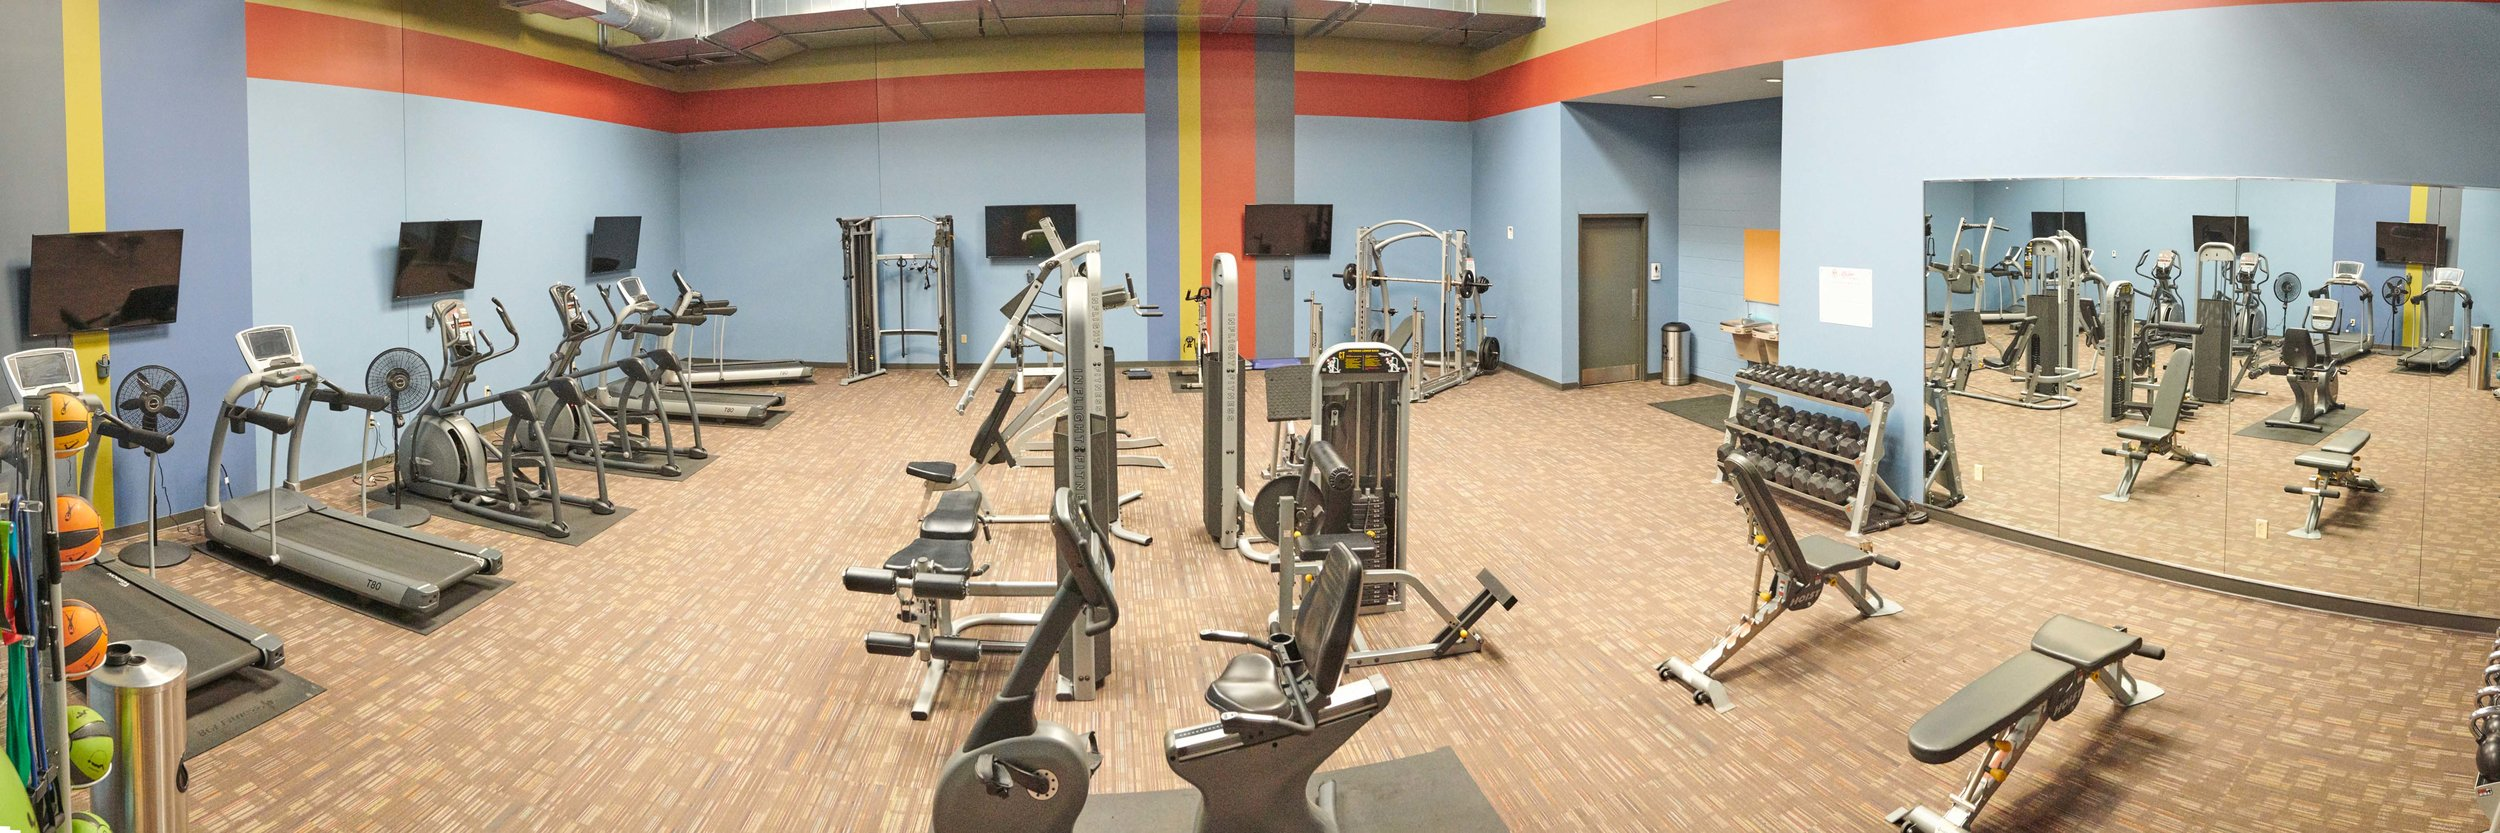 On Site Workout Center with Locker Rooms